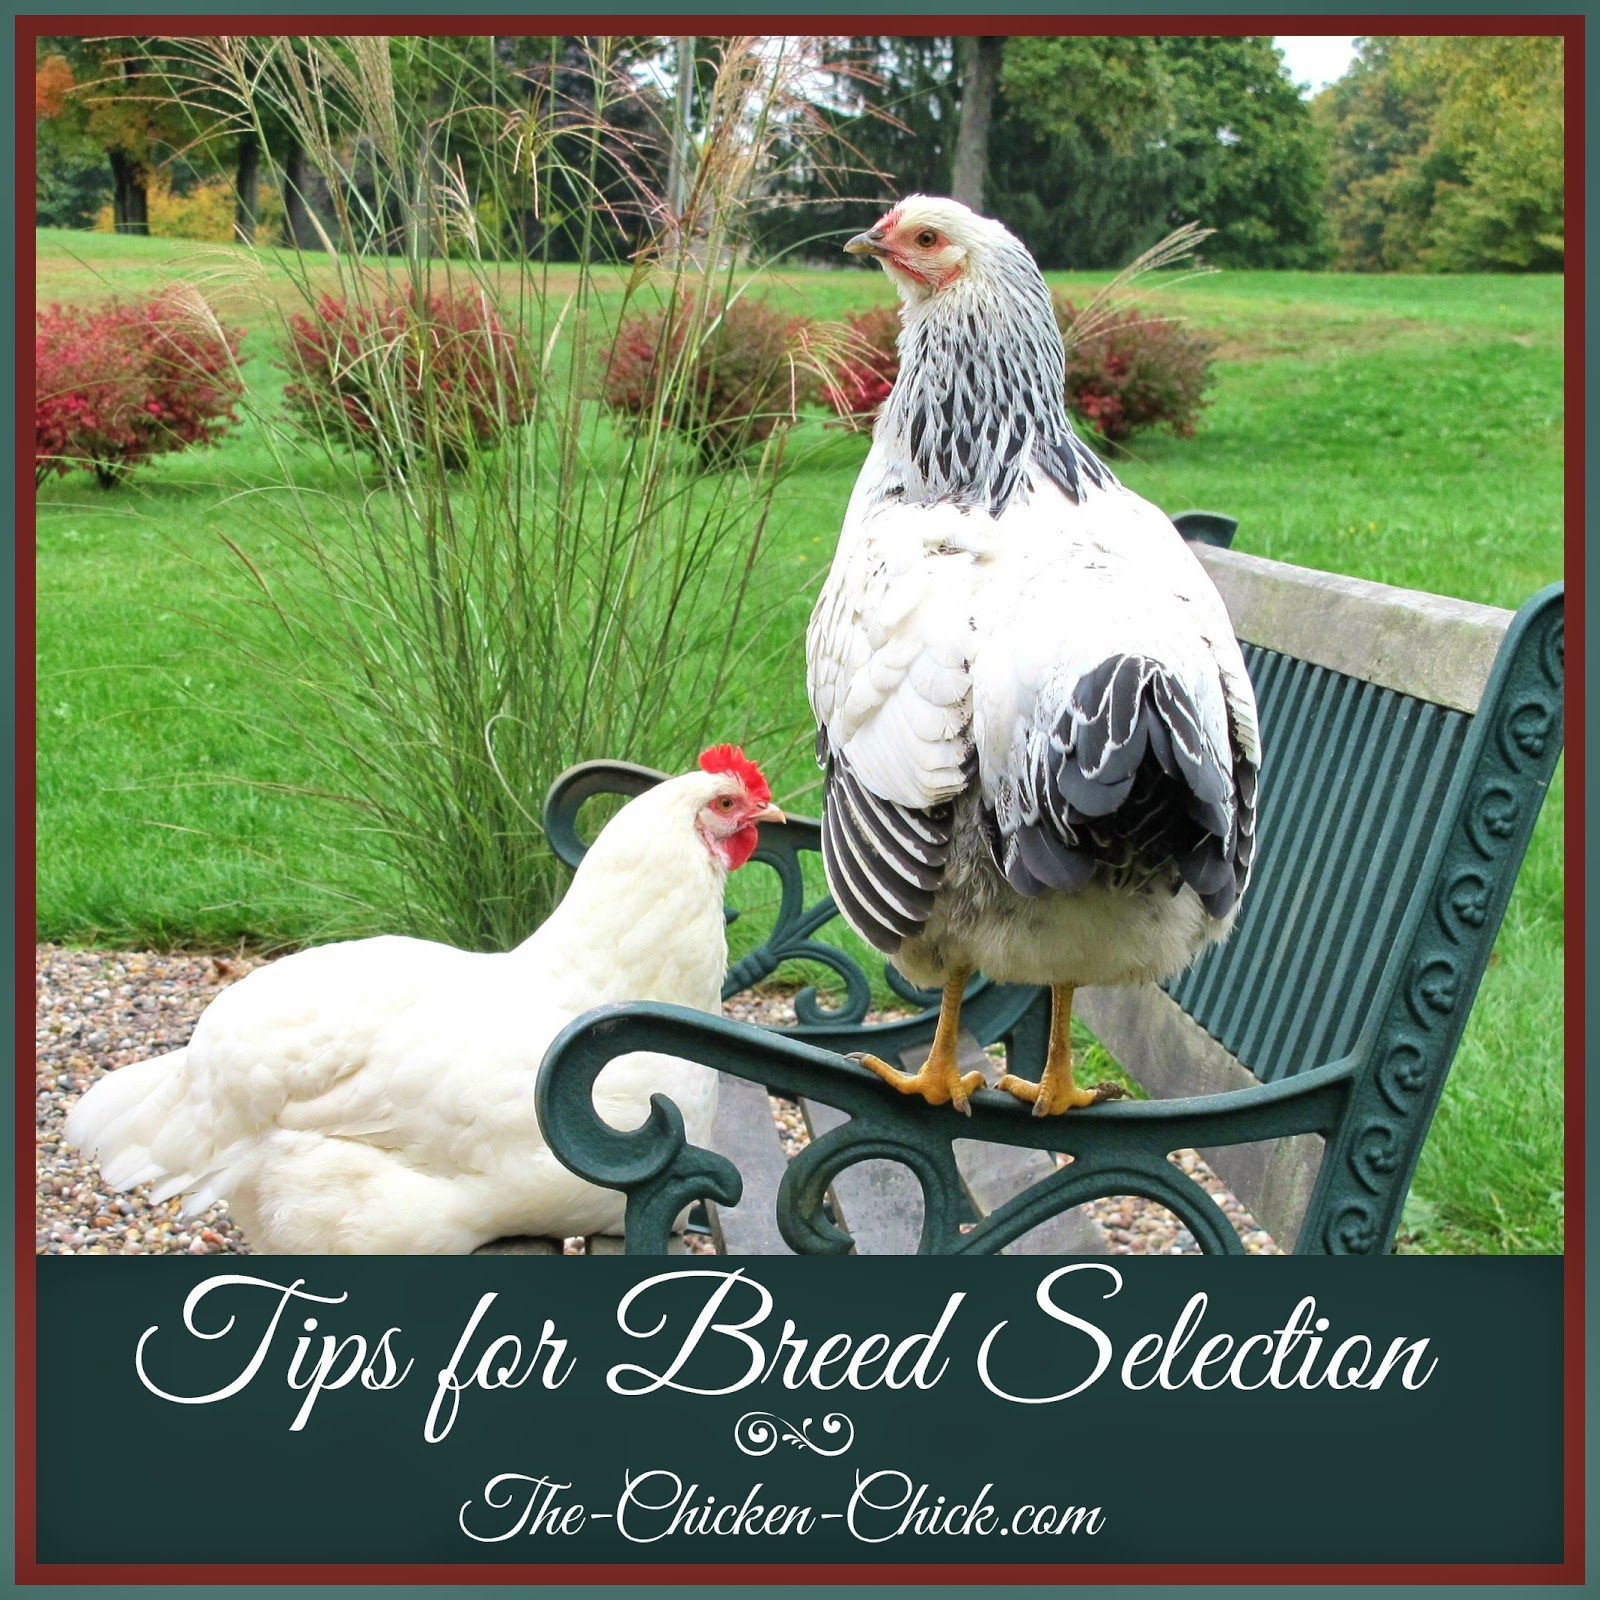 The enormous array of breeds available to choose from can be daunting, but it's important to make an informed decision about breeds in order to avoid disappointment for the chicken keeper as well as unnecessary challenges for the chickens.